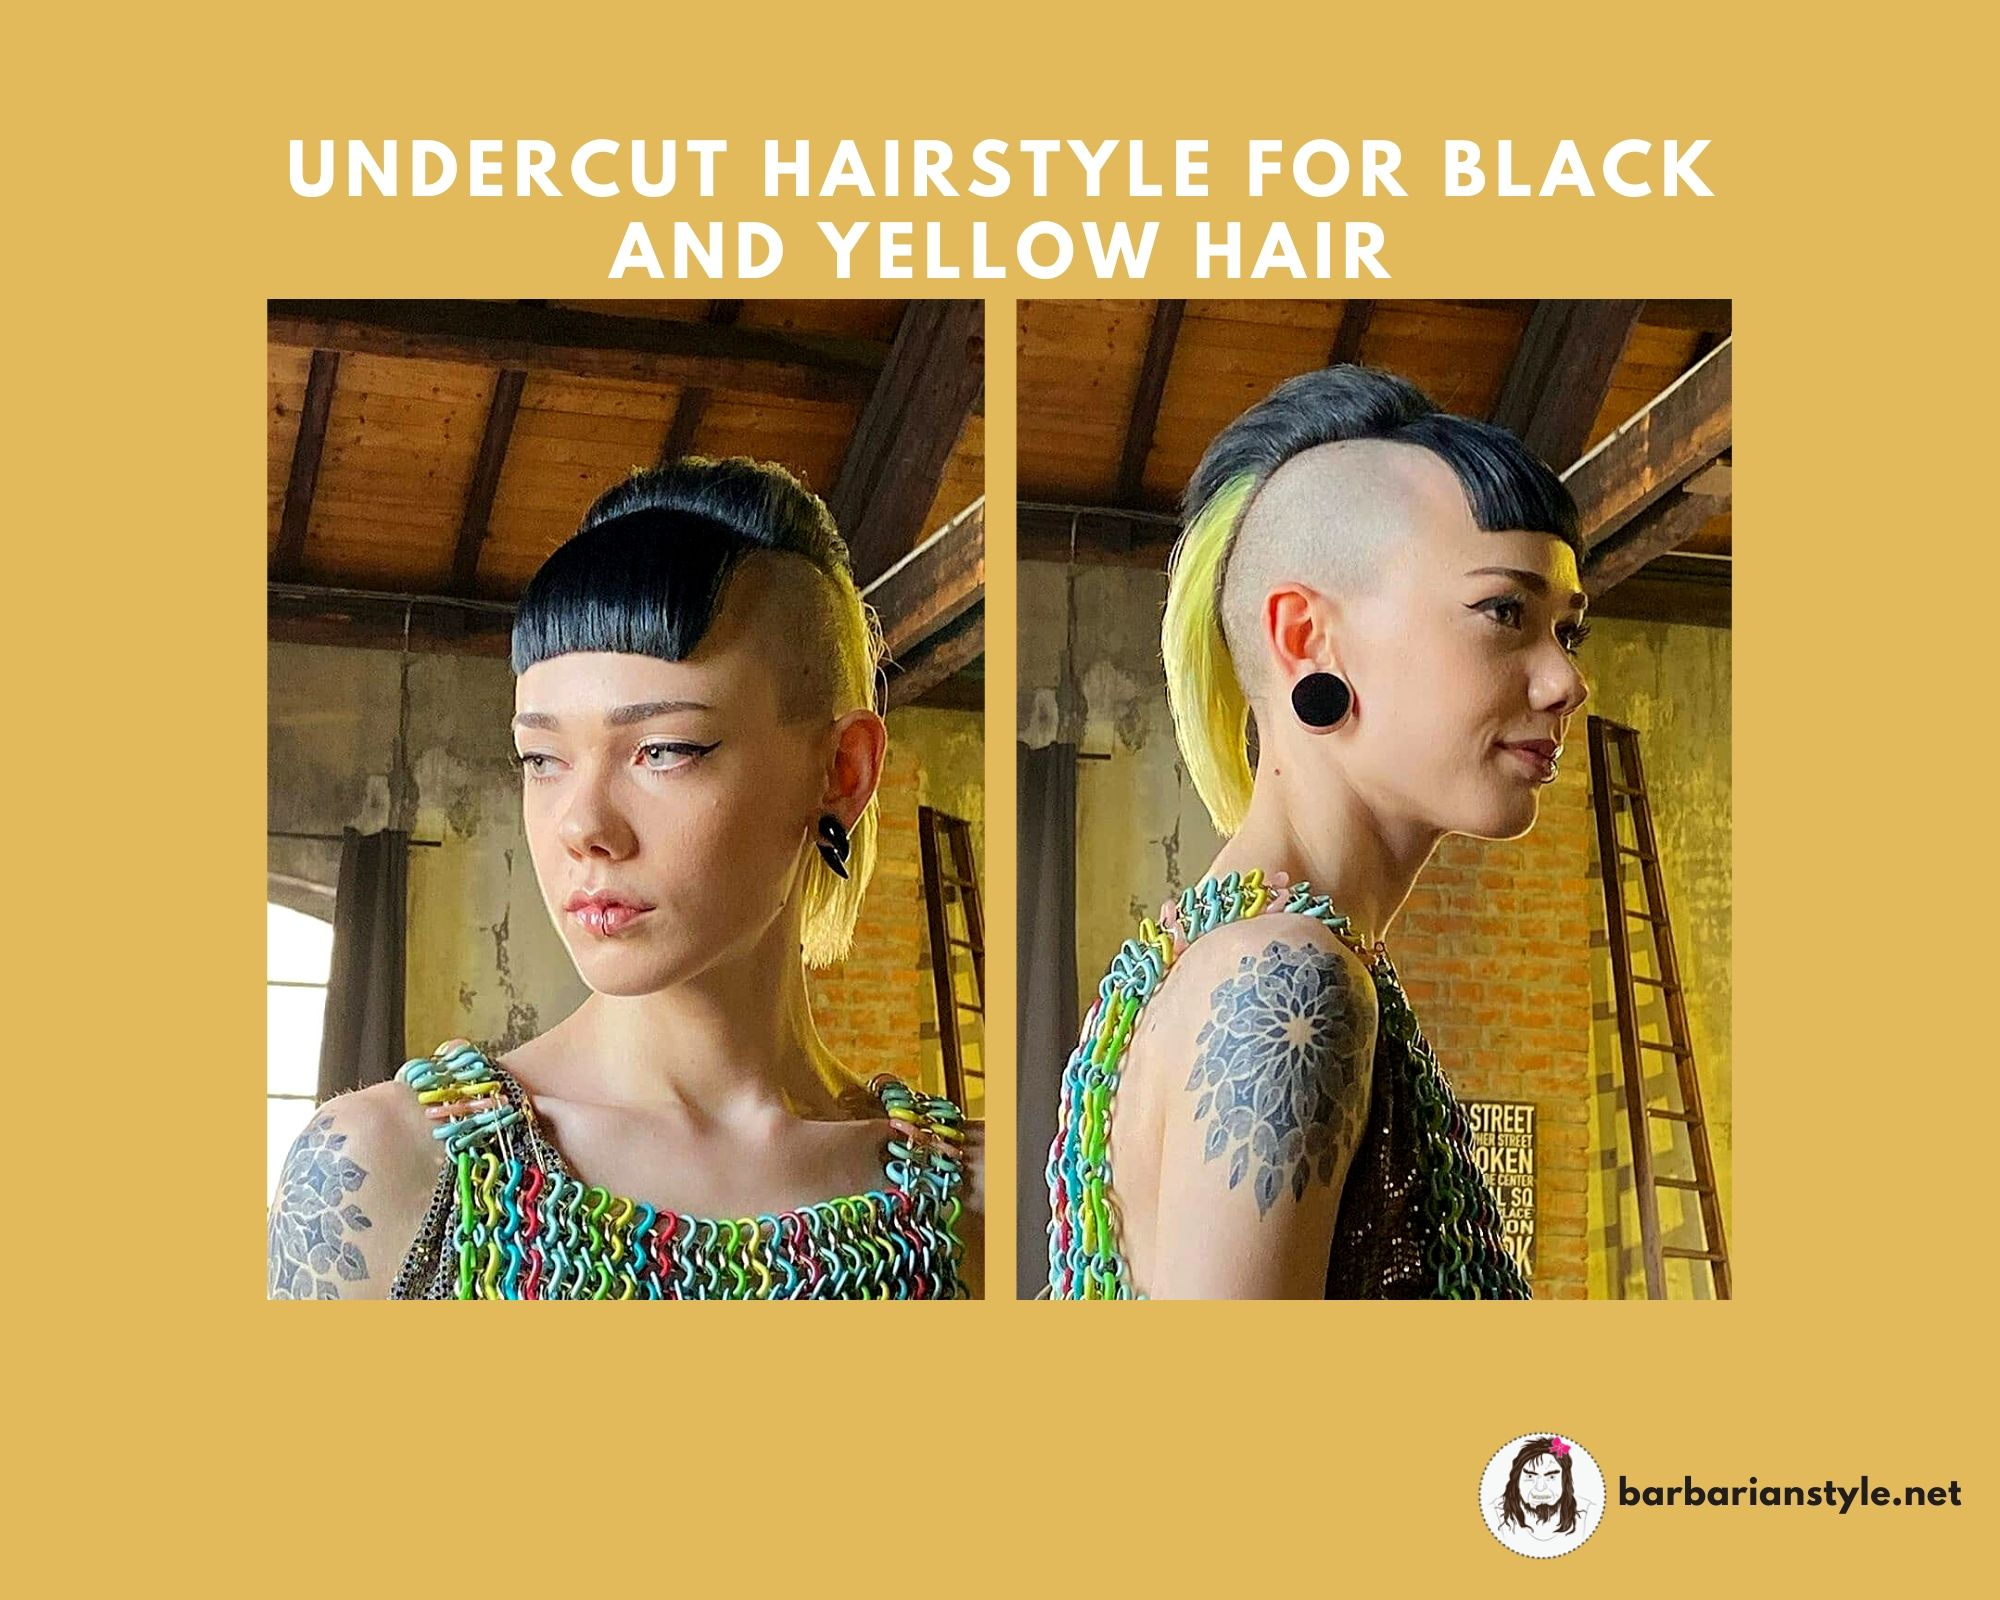 Undercut Hairstyle for Black and Yellow Hair